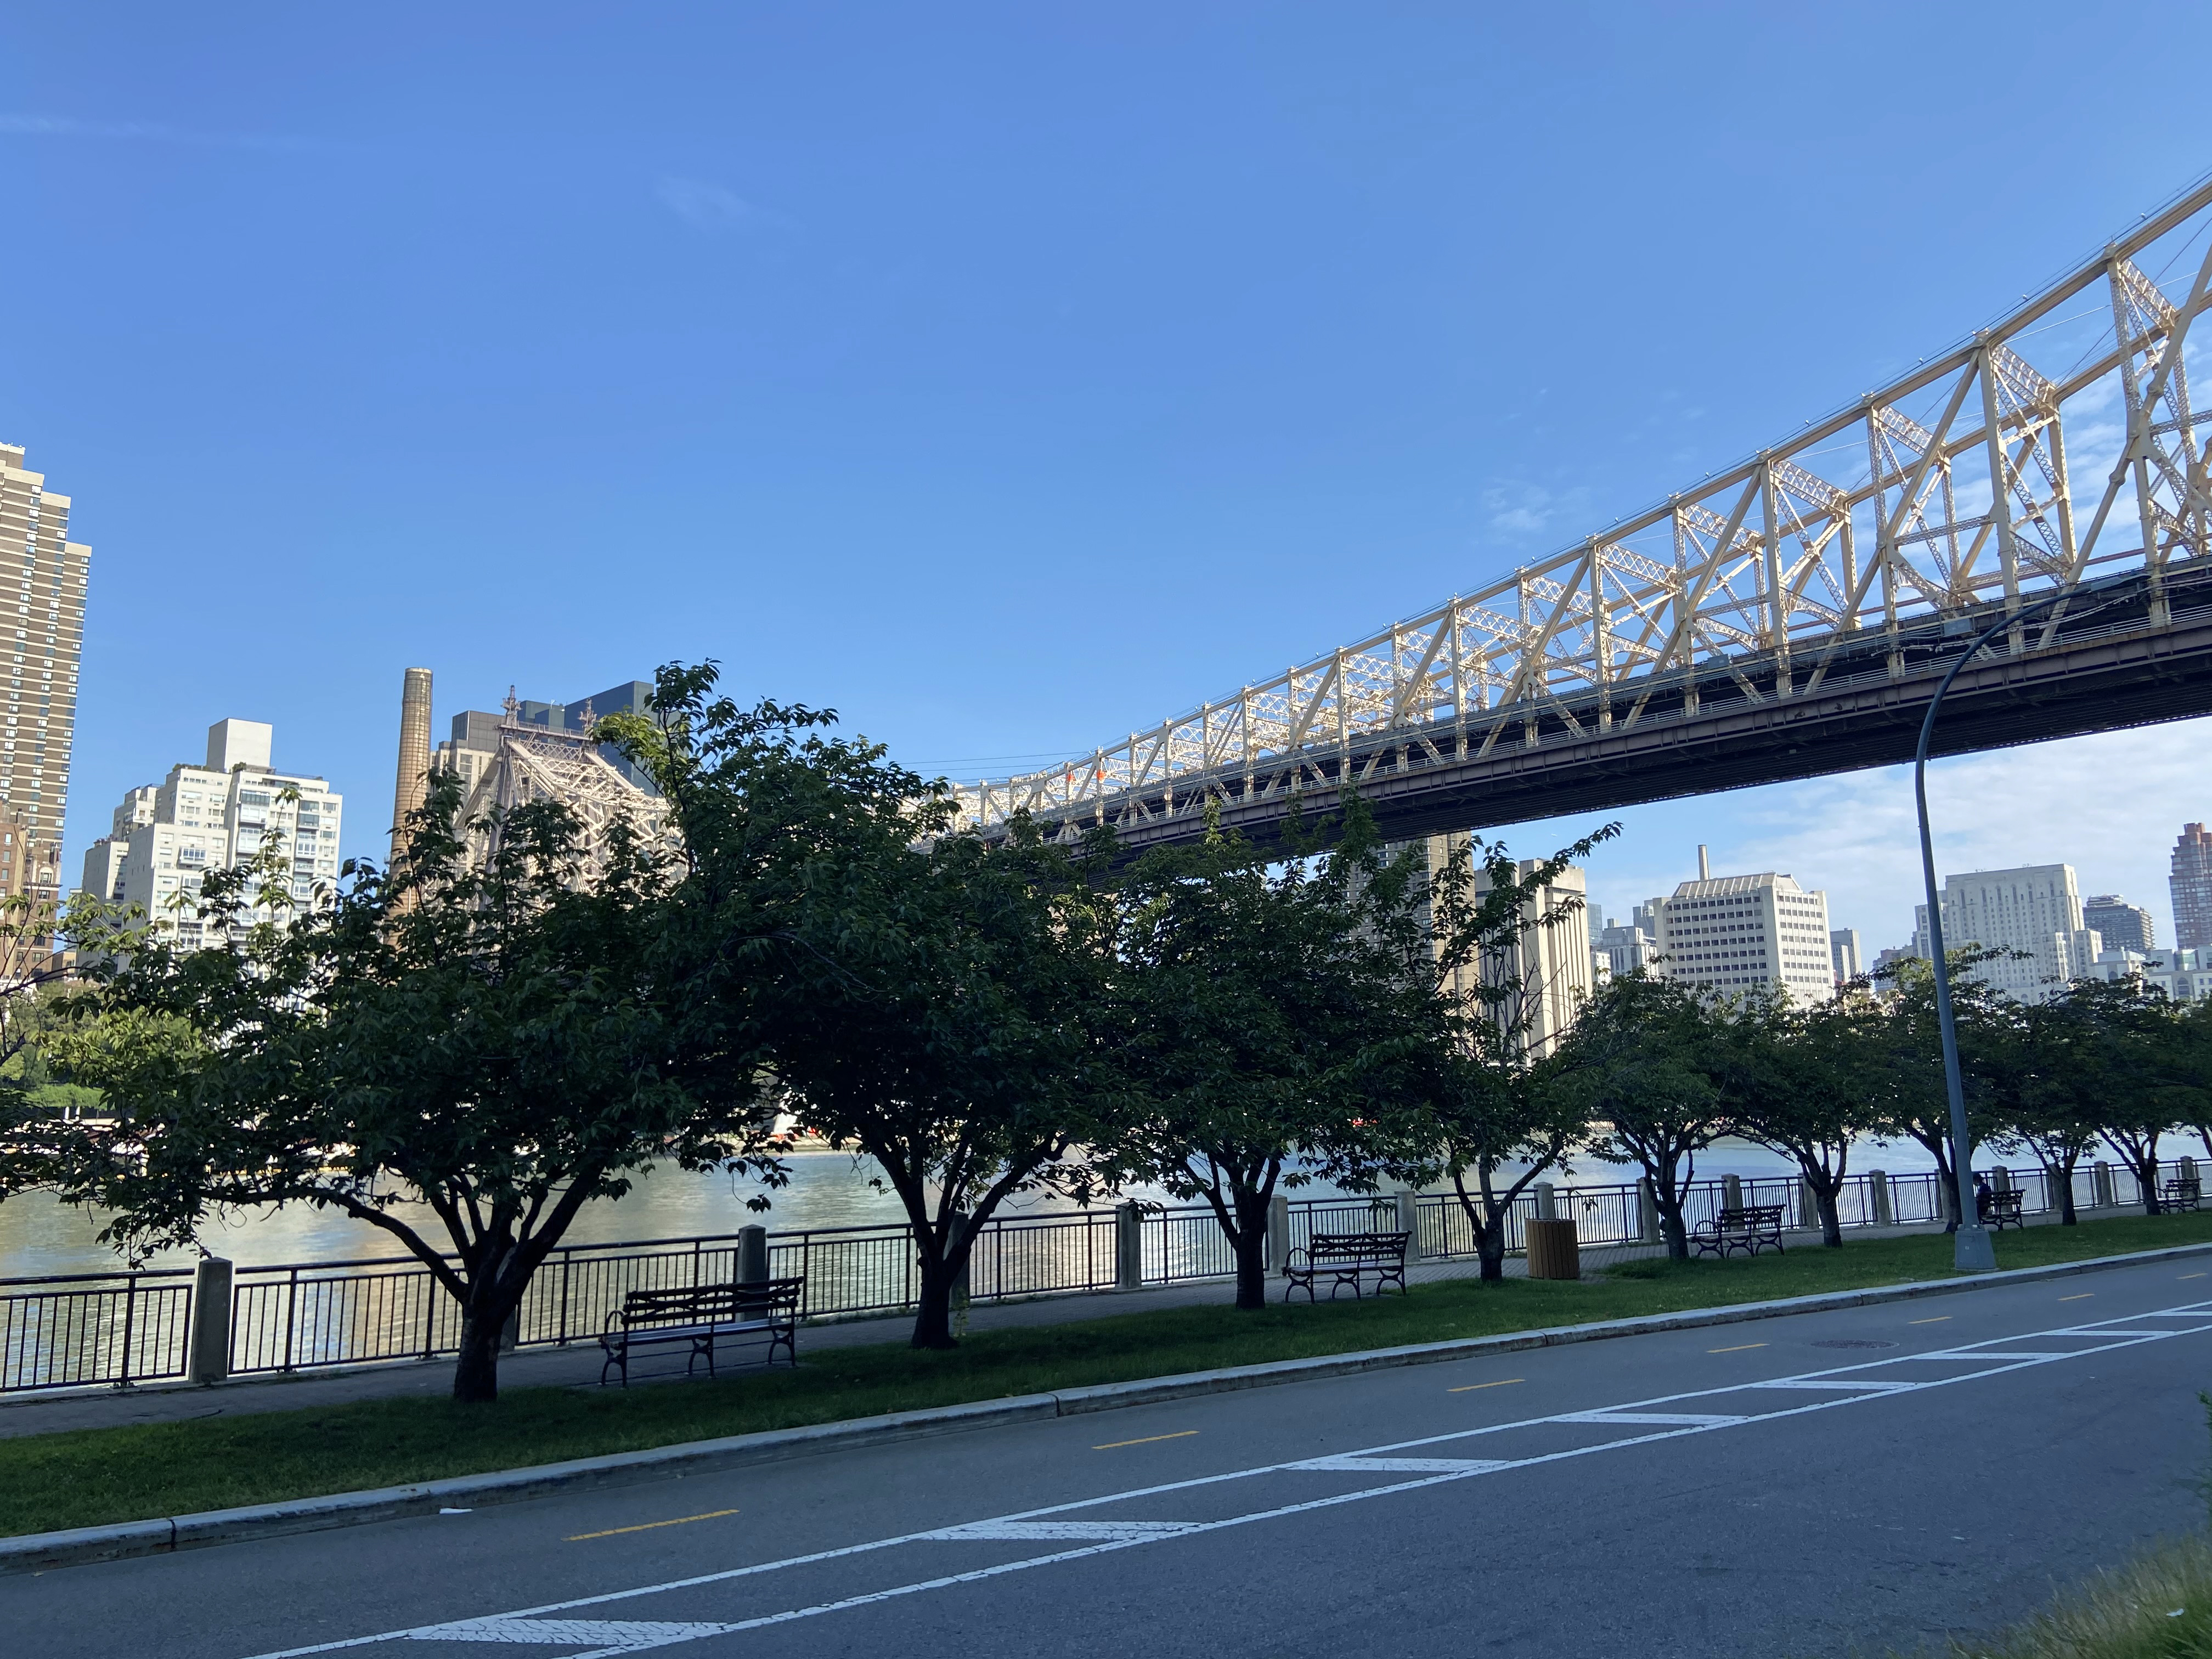 Should you feel the need to get out and walk around, the footbridge along the East River is a comfortable option.